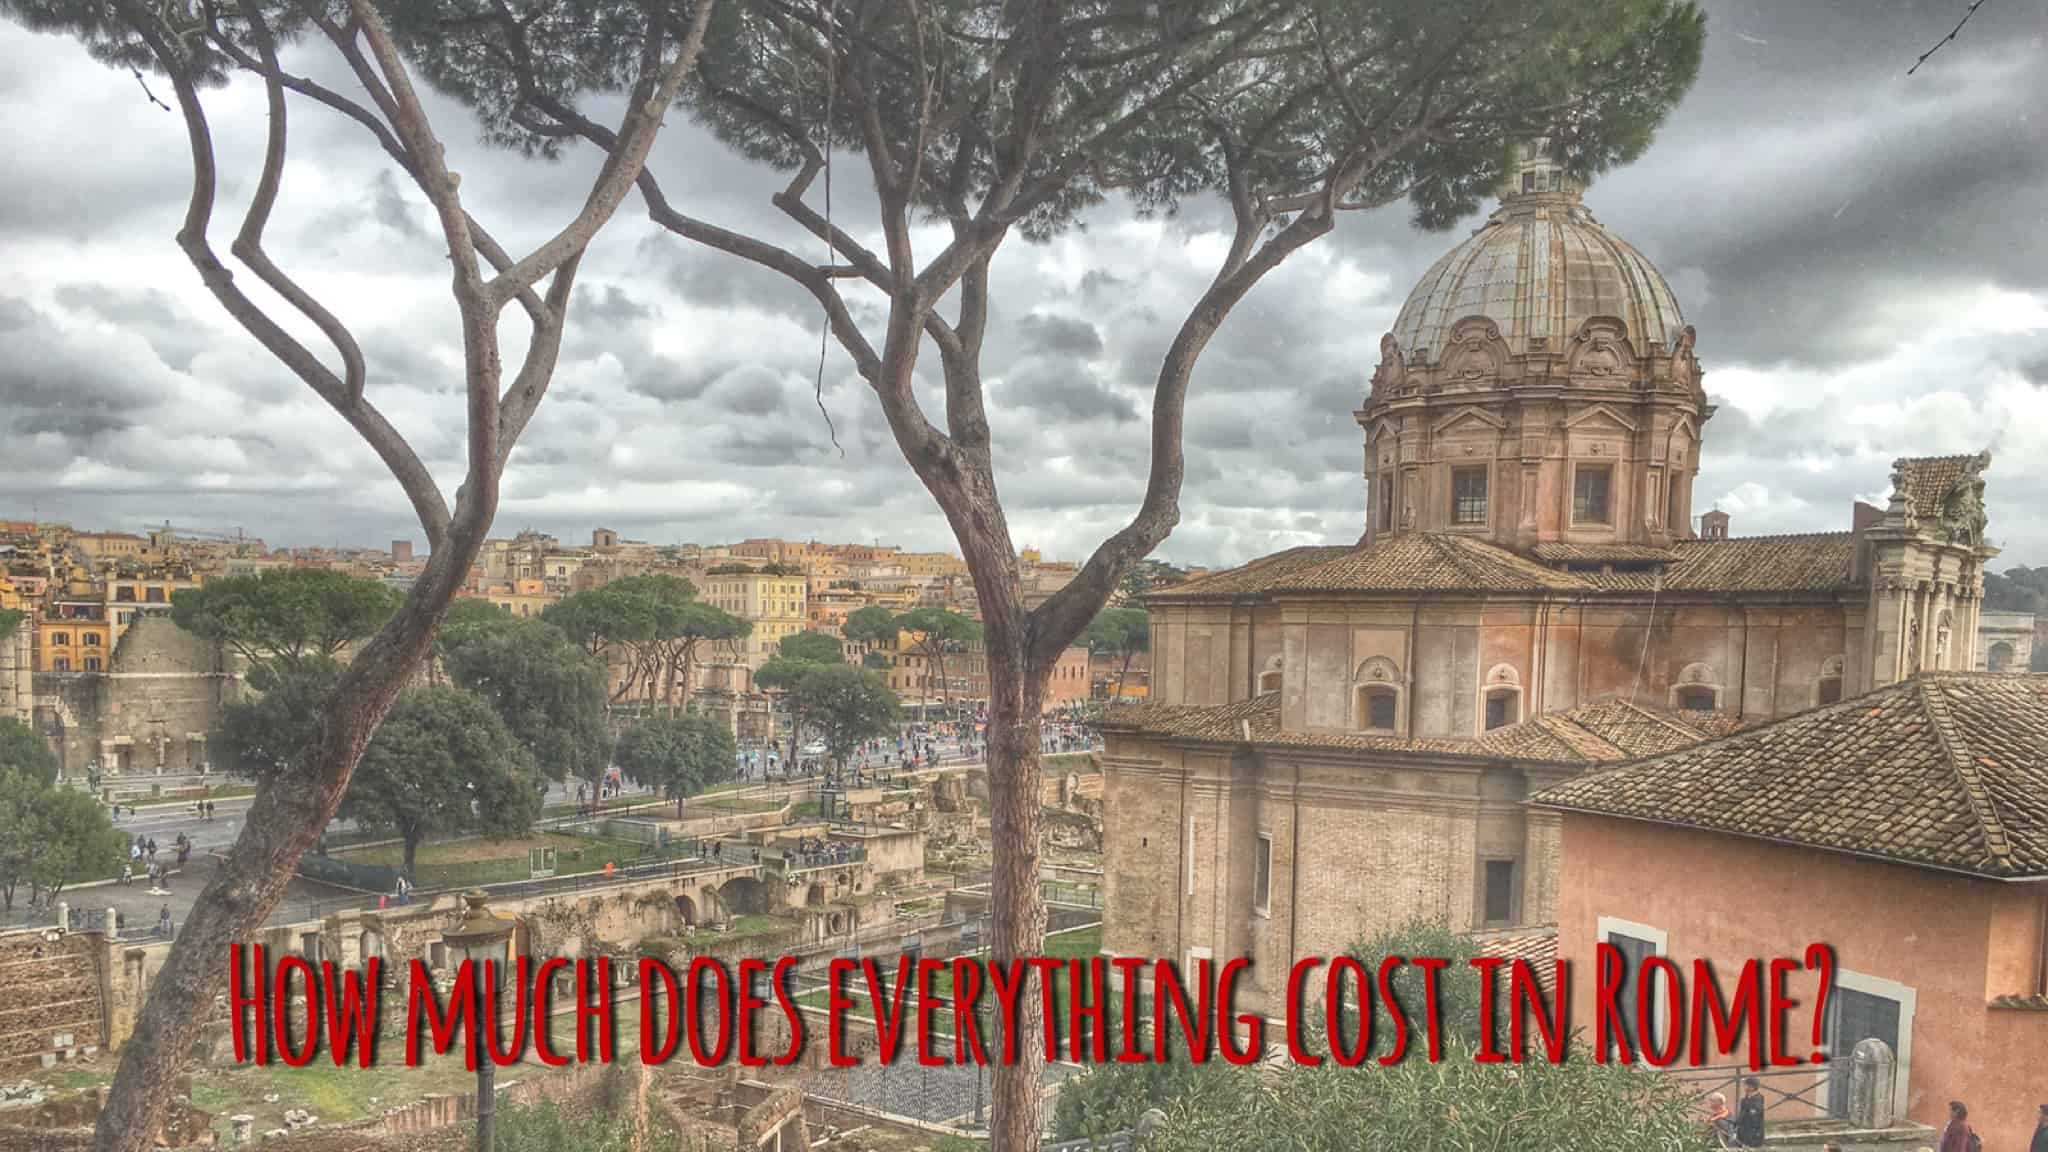 Is Rome Expensive? What Are The Prices In Rome For